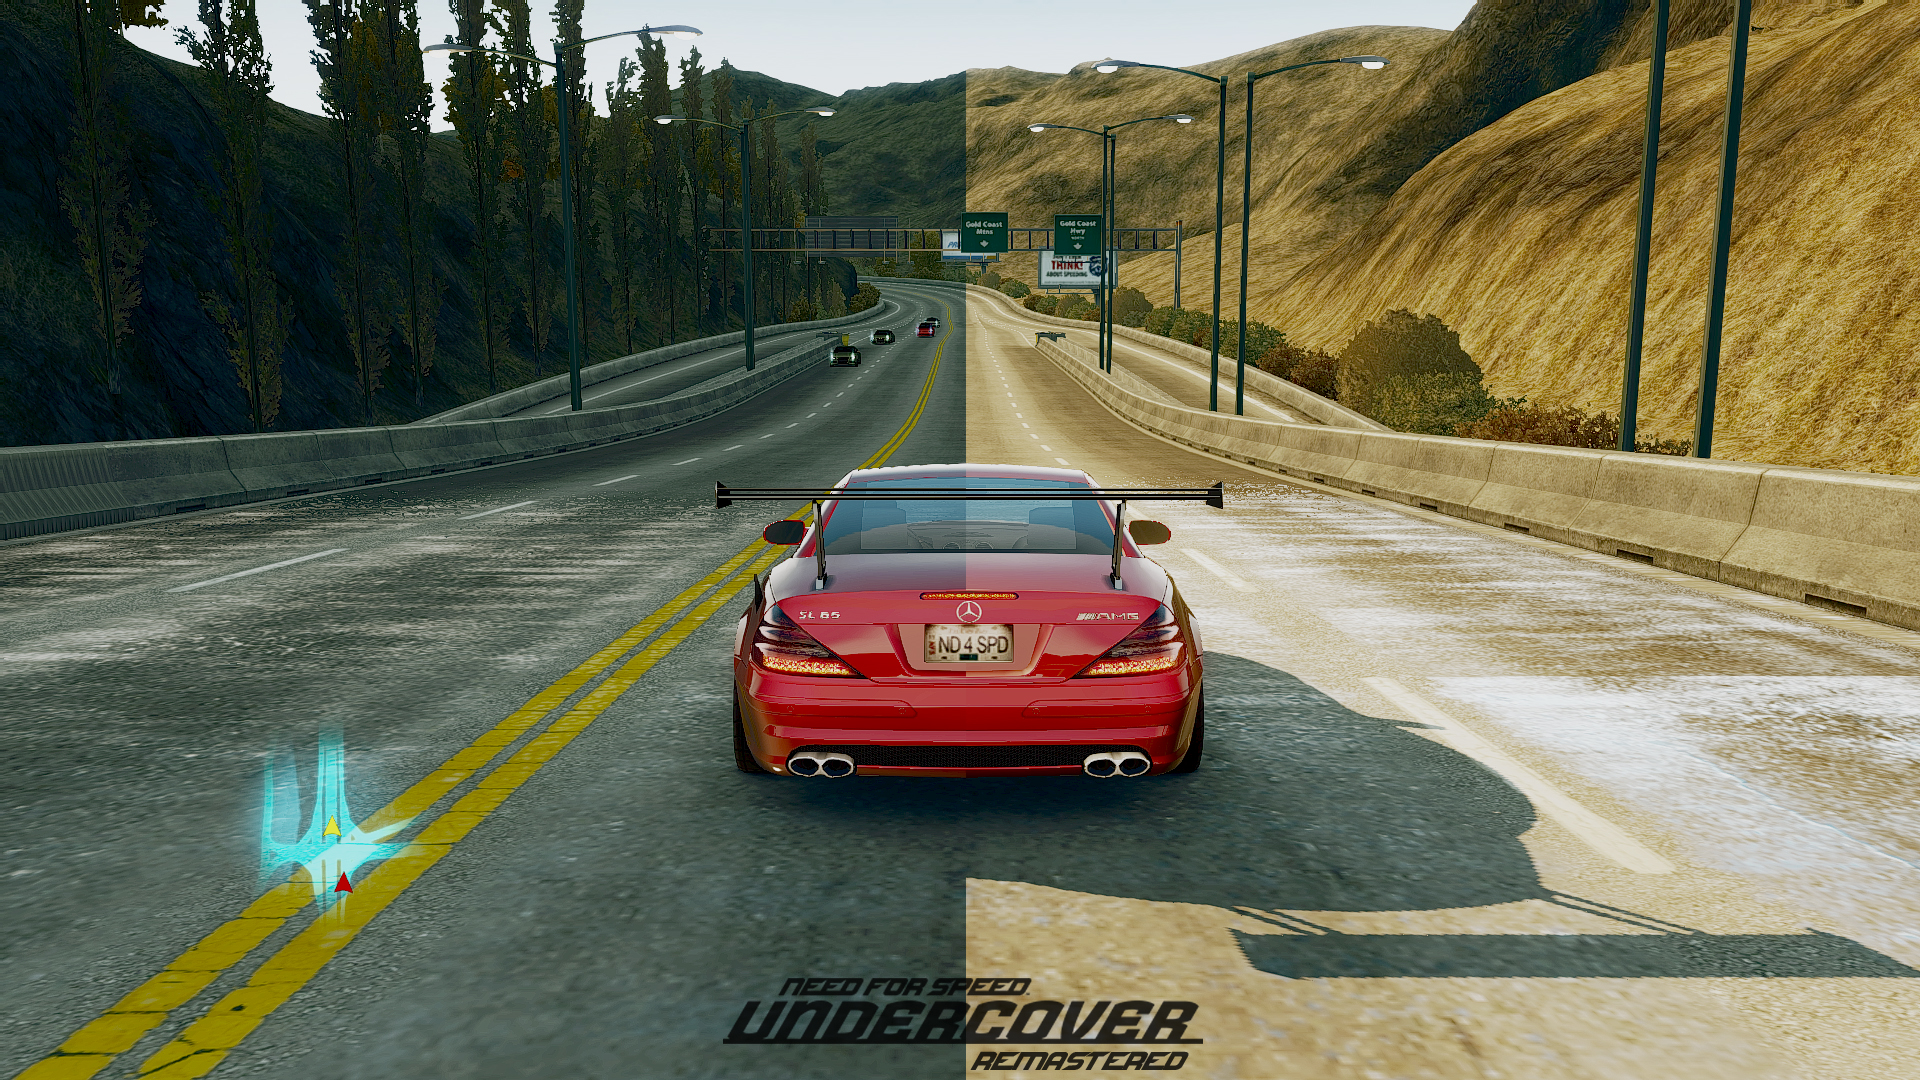 NFS Undercover | REMASTERED | DOUBLEPATCH file - Mod DB